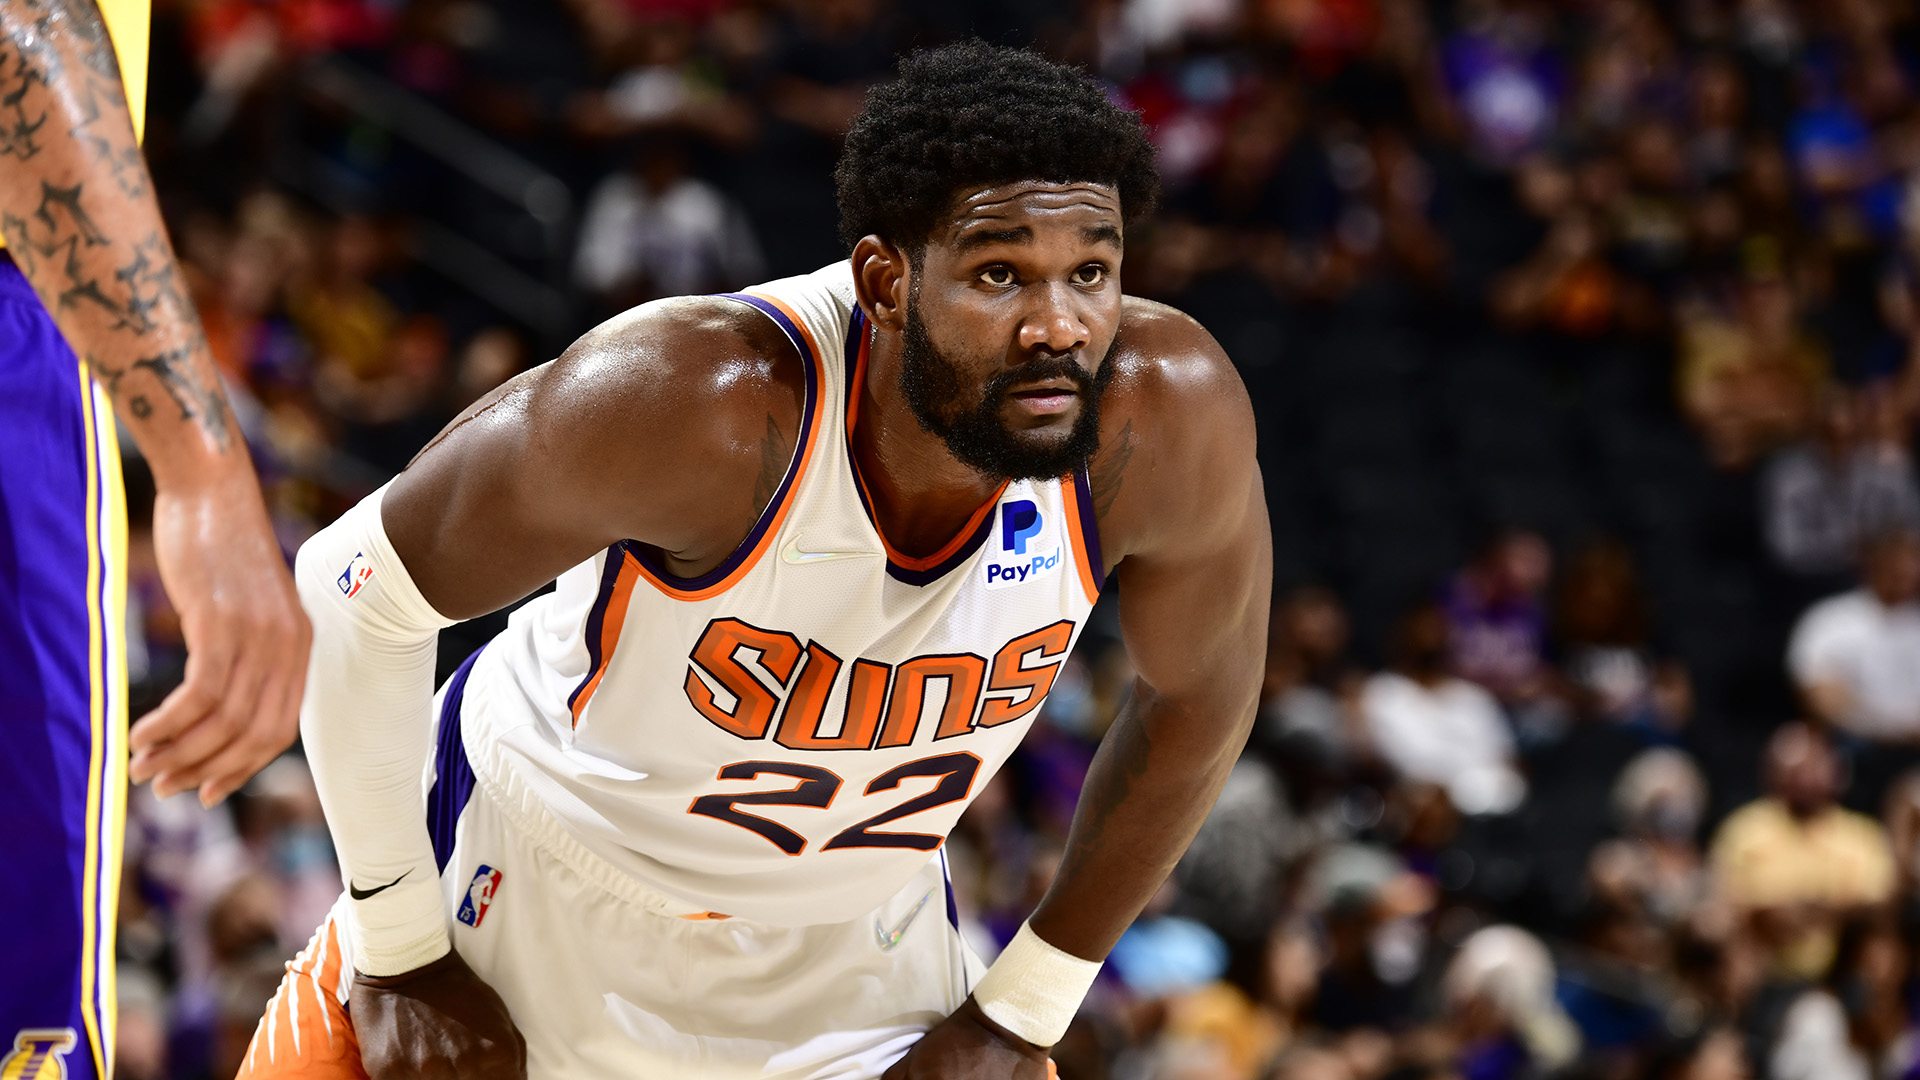 Report: Phoenix Suns, Deandre Ayton fail to reach an agreement on a rookie contract extension